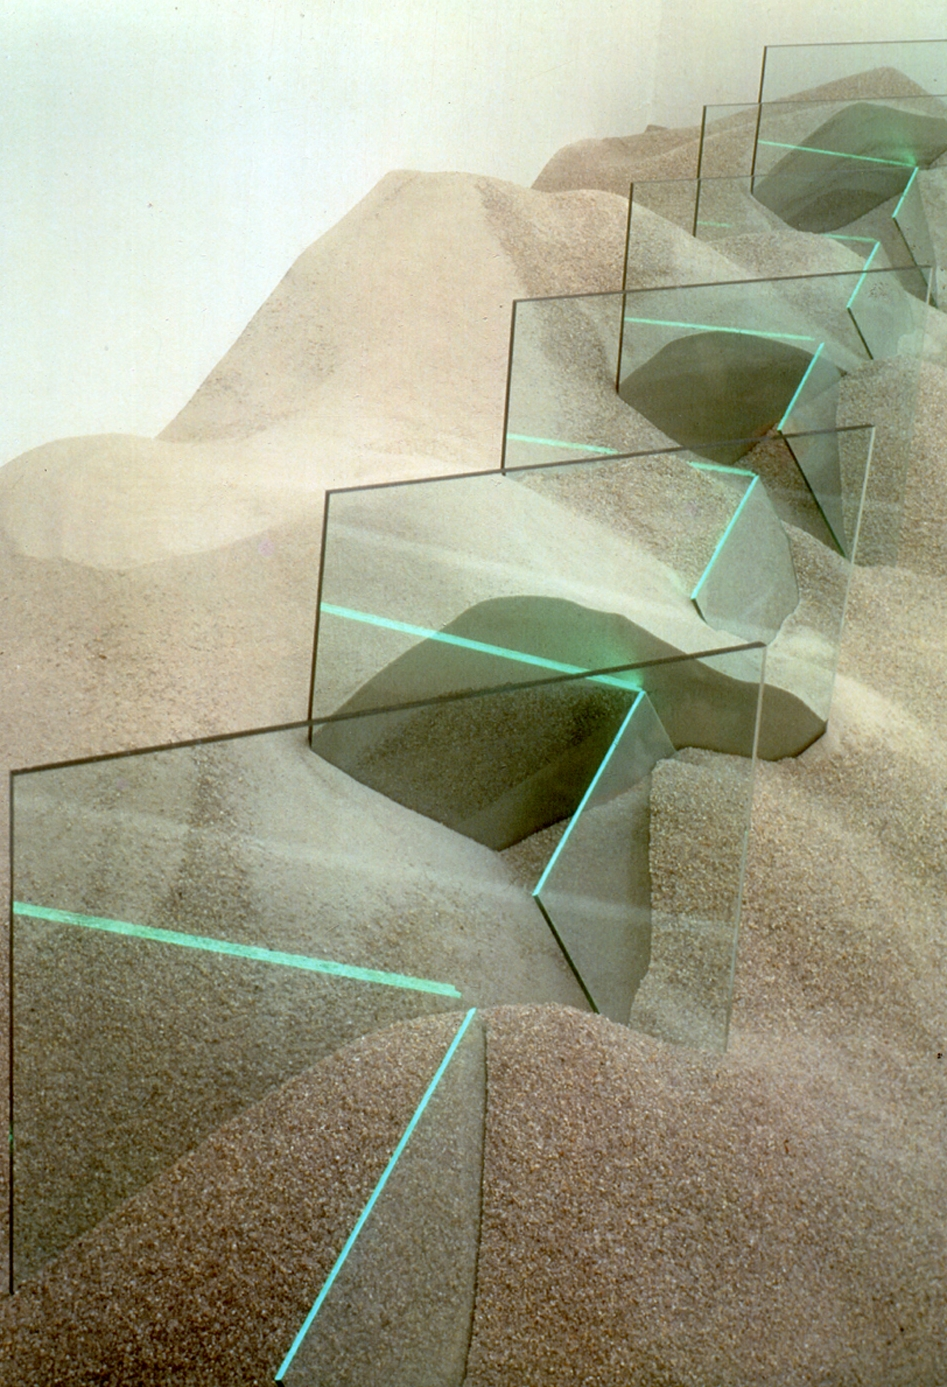 Untitled   1971  Sand, glass, argon  Size relative to environment  Collection of Laguna Museum, Estate of Illeana Sonnabend